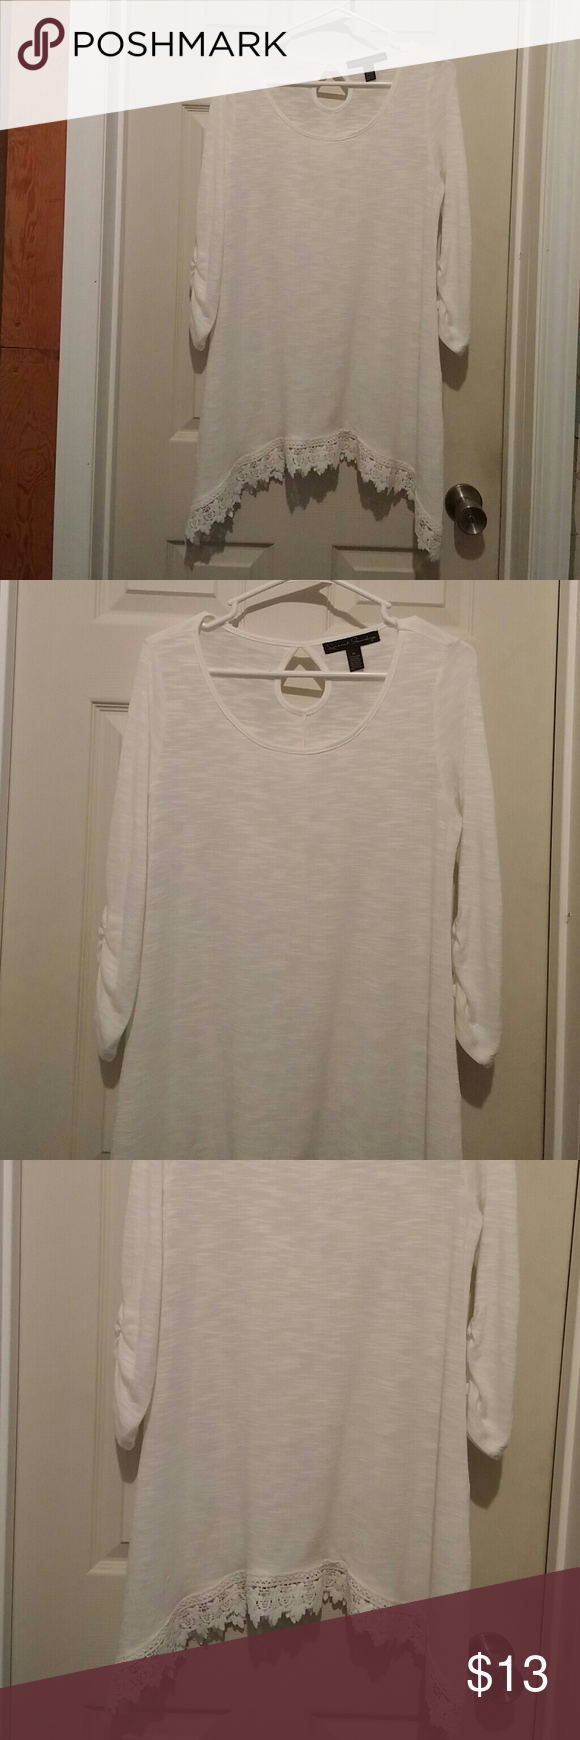 Beautiful Women's Top Does have some pilling under the armpits, otherwise in excellent condition. French Laundry Tops Tees - Long Sleeve